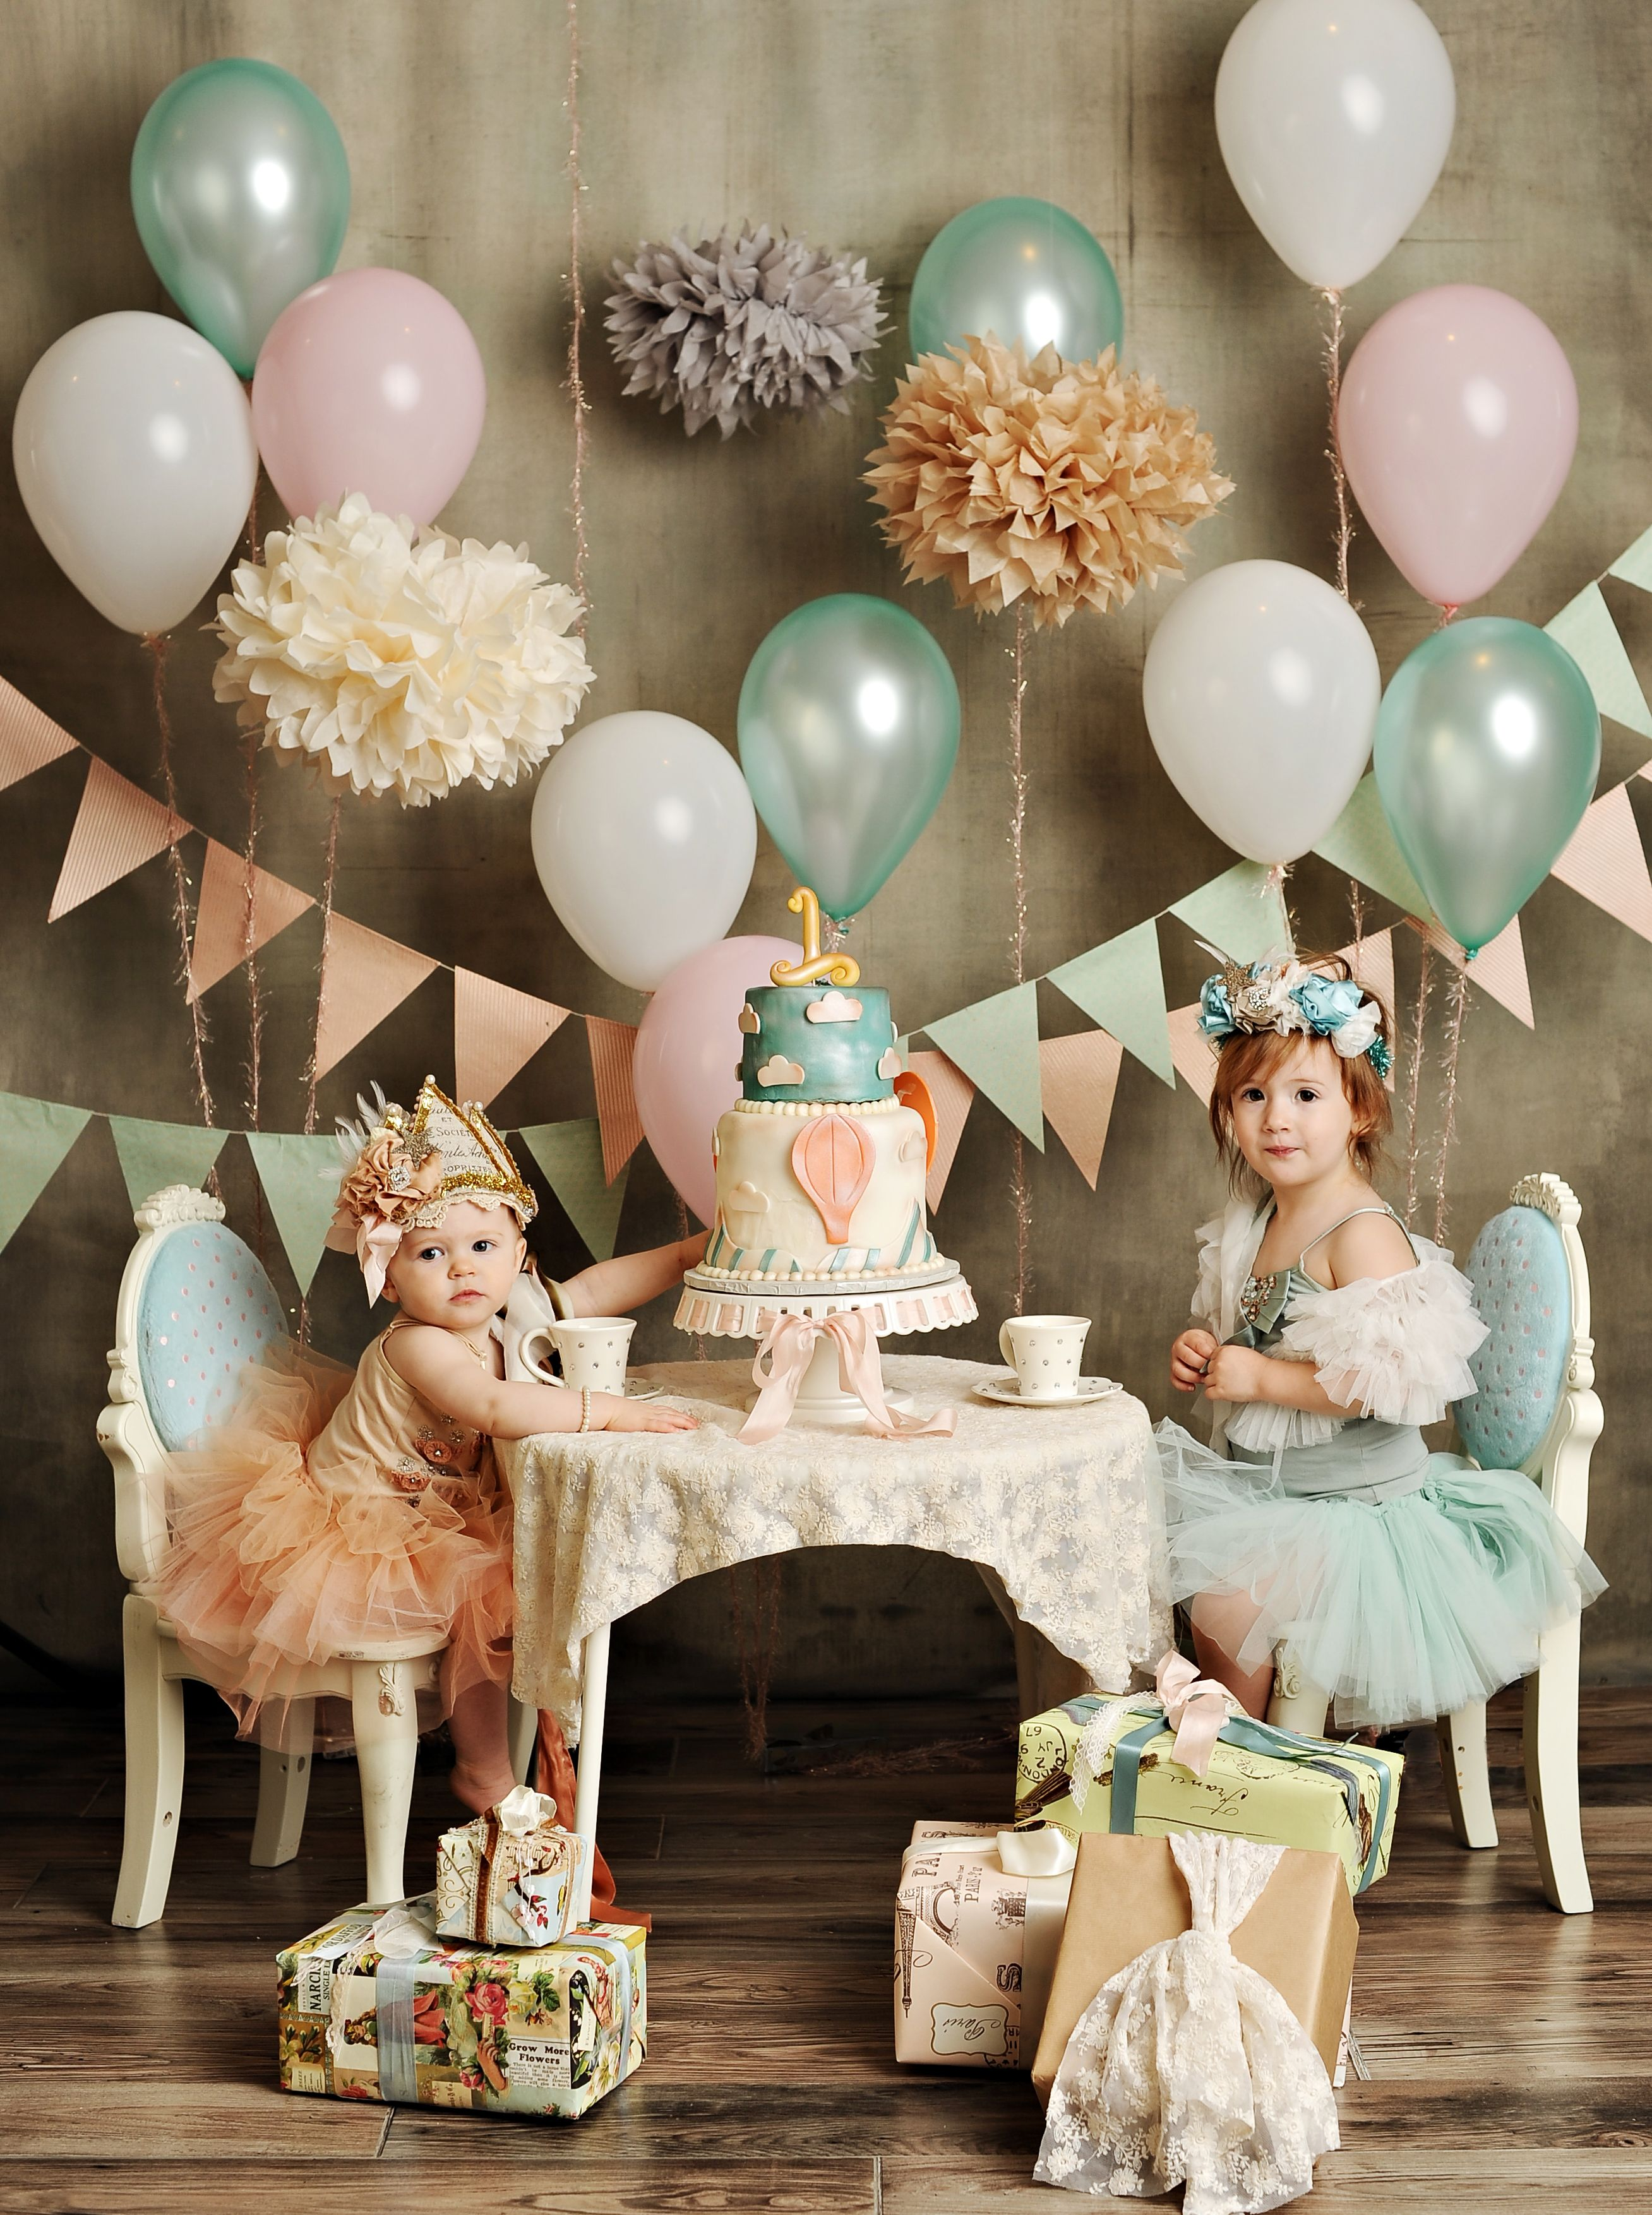 14 Springtime Birthday Party Themes for Girls